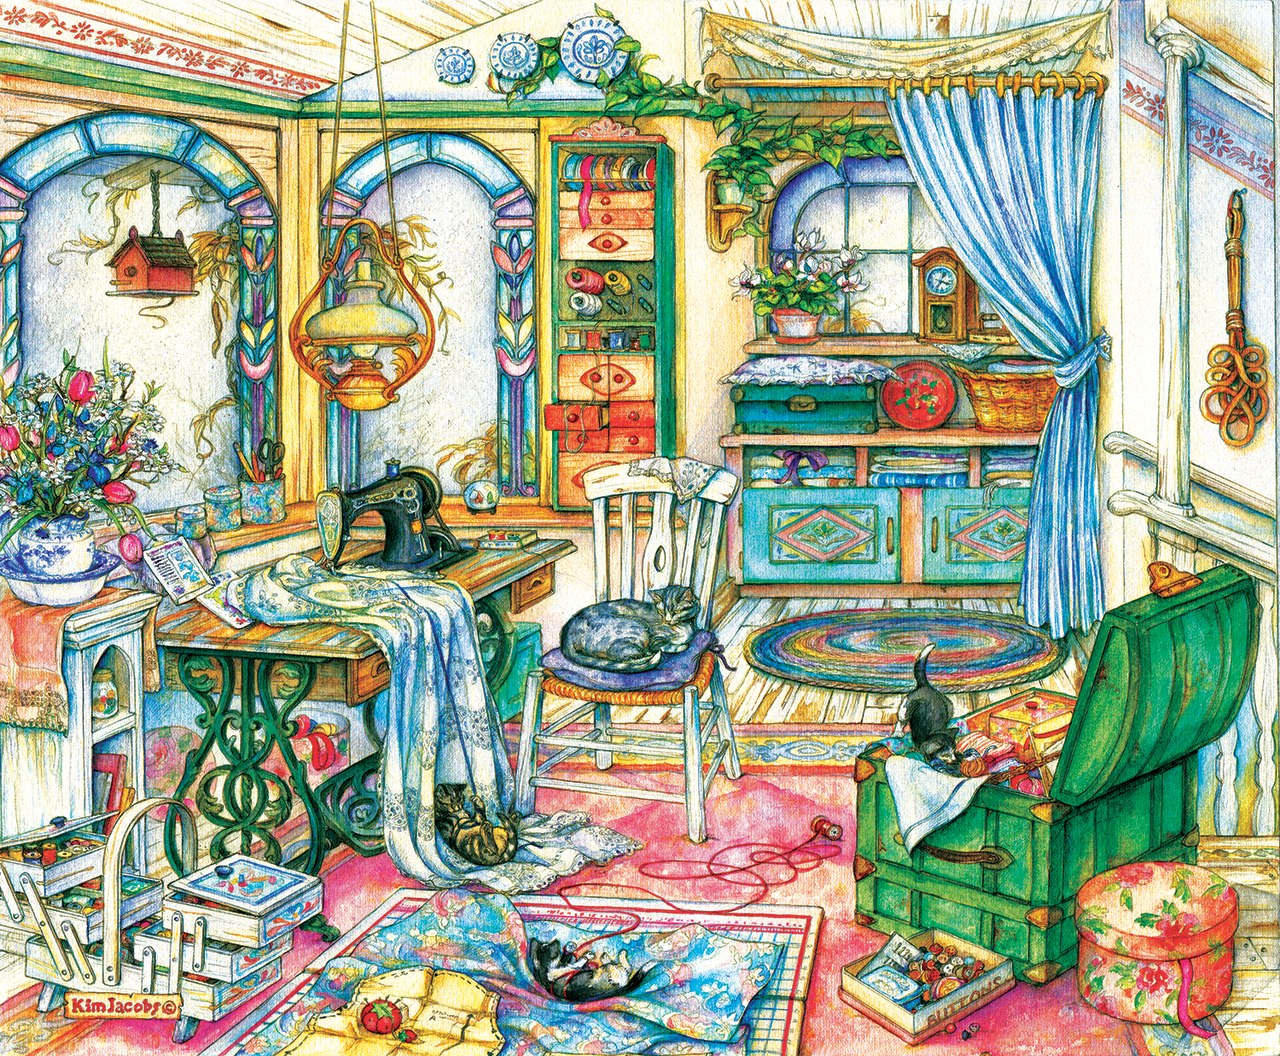 My Sewing Room - 1000pc Jigsaw Puzzle By Sunsout  			  					NEW